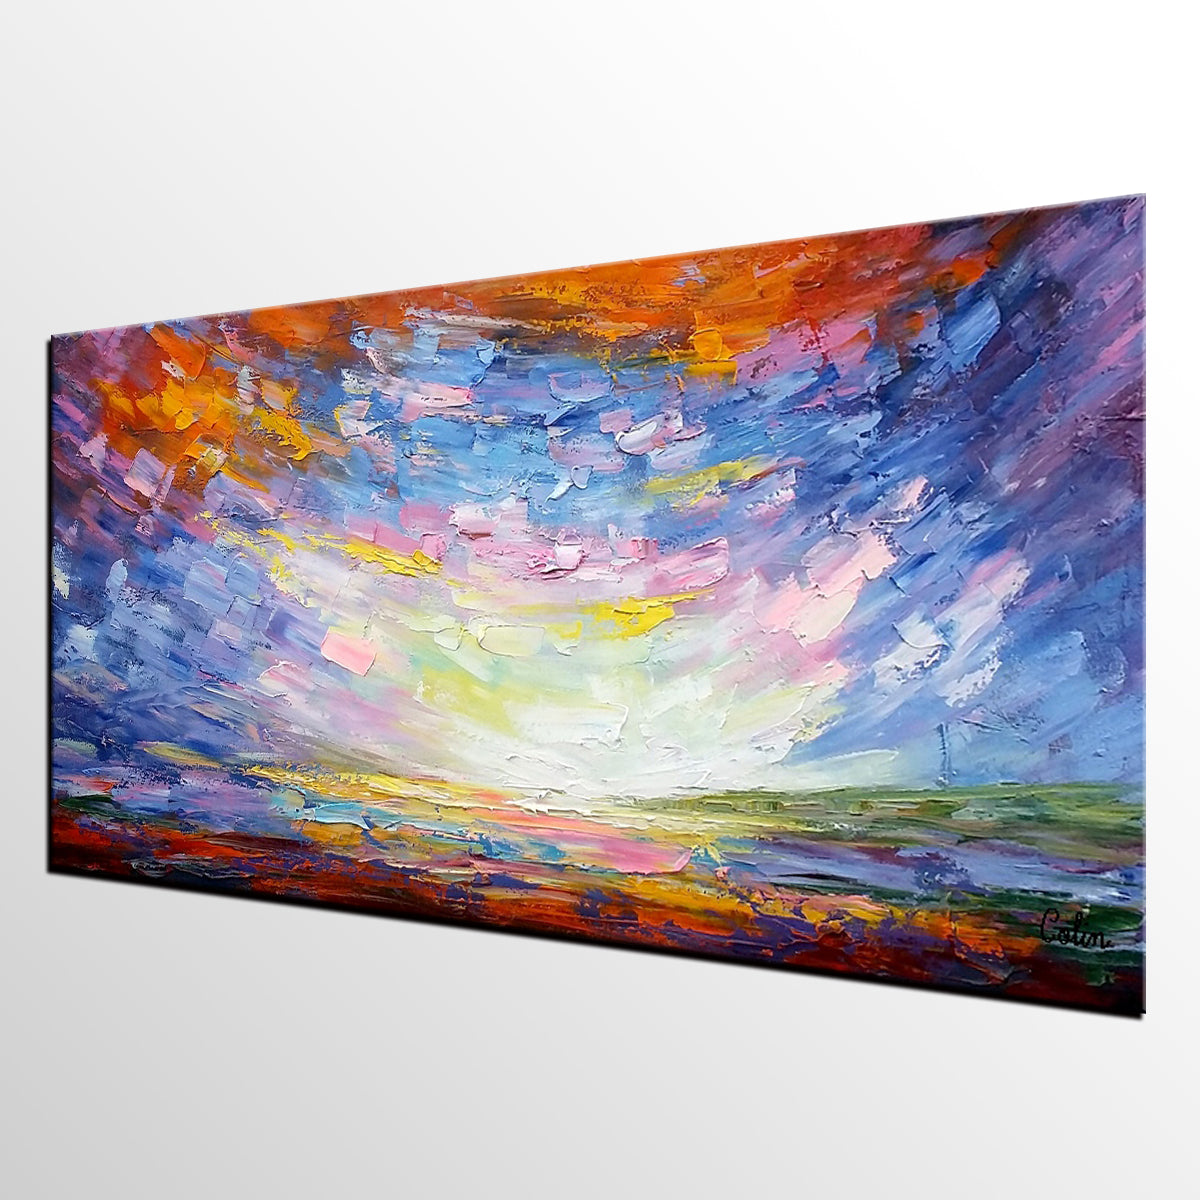 Original Oil Painting, Modern Painting, Abstract Landscape Art, Abstract Painting, Large Art, Canvas Art, Painting for Sale